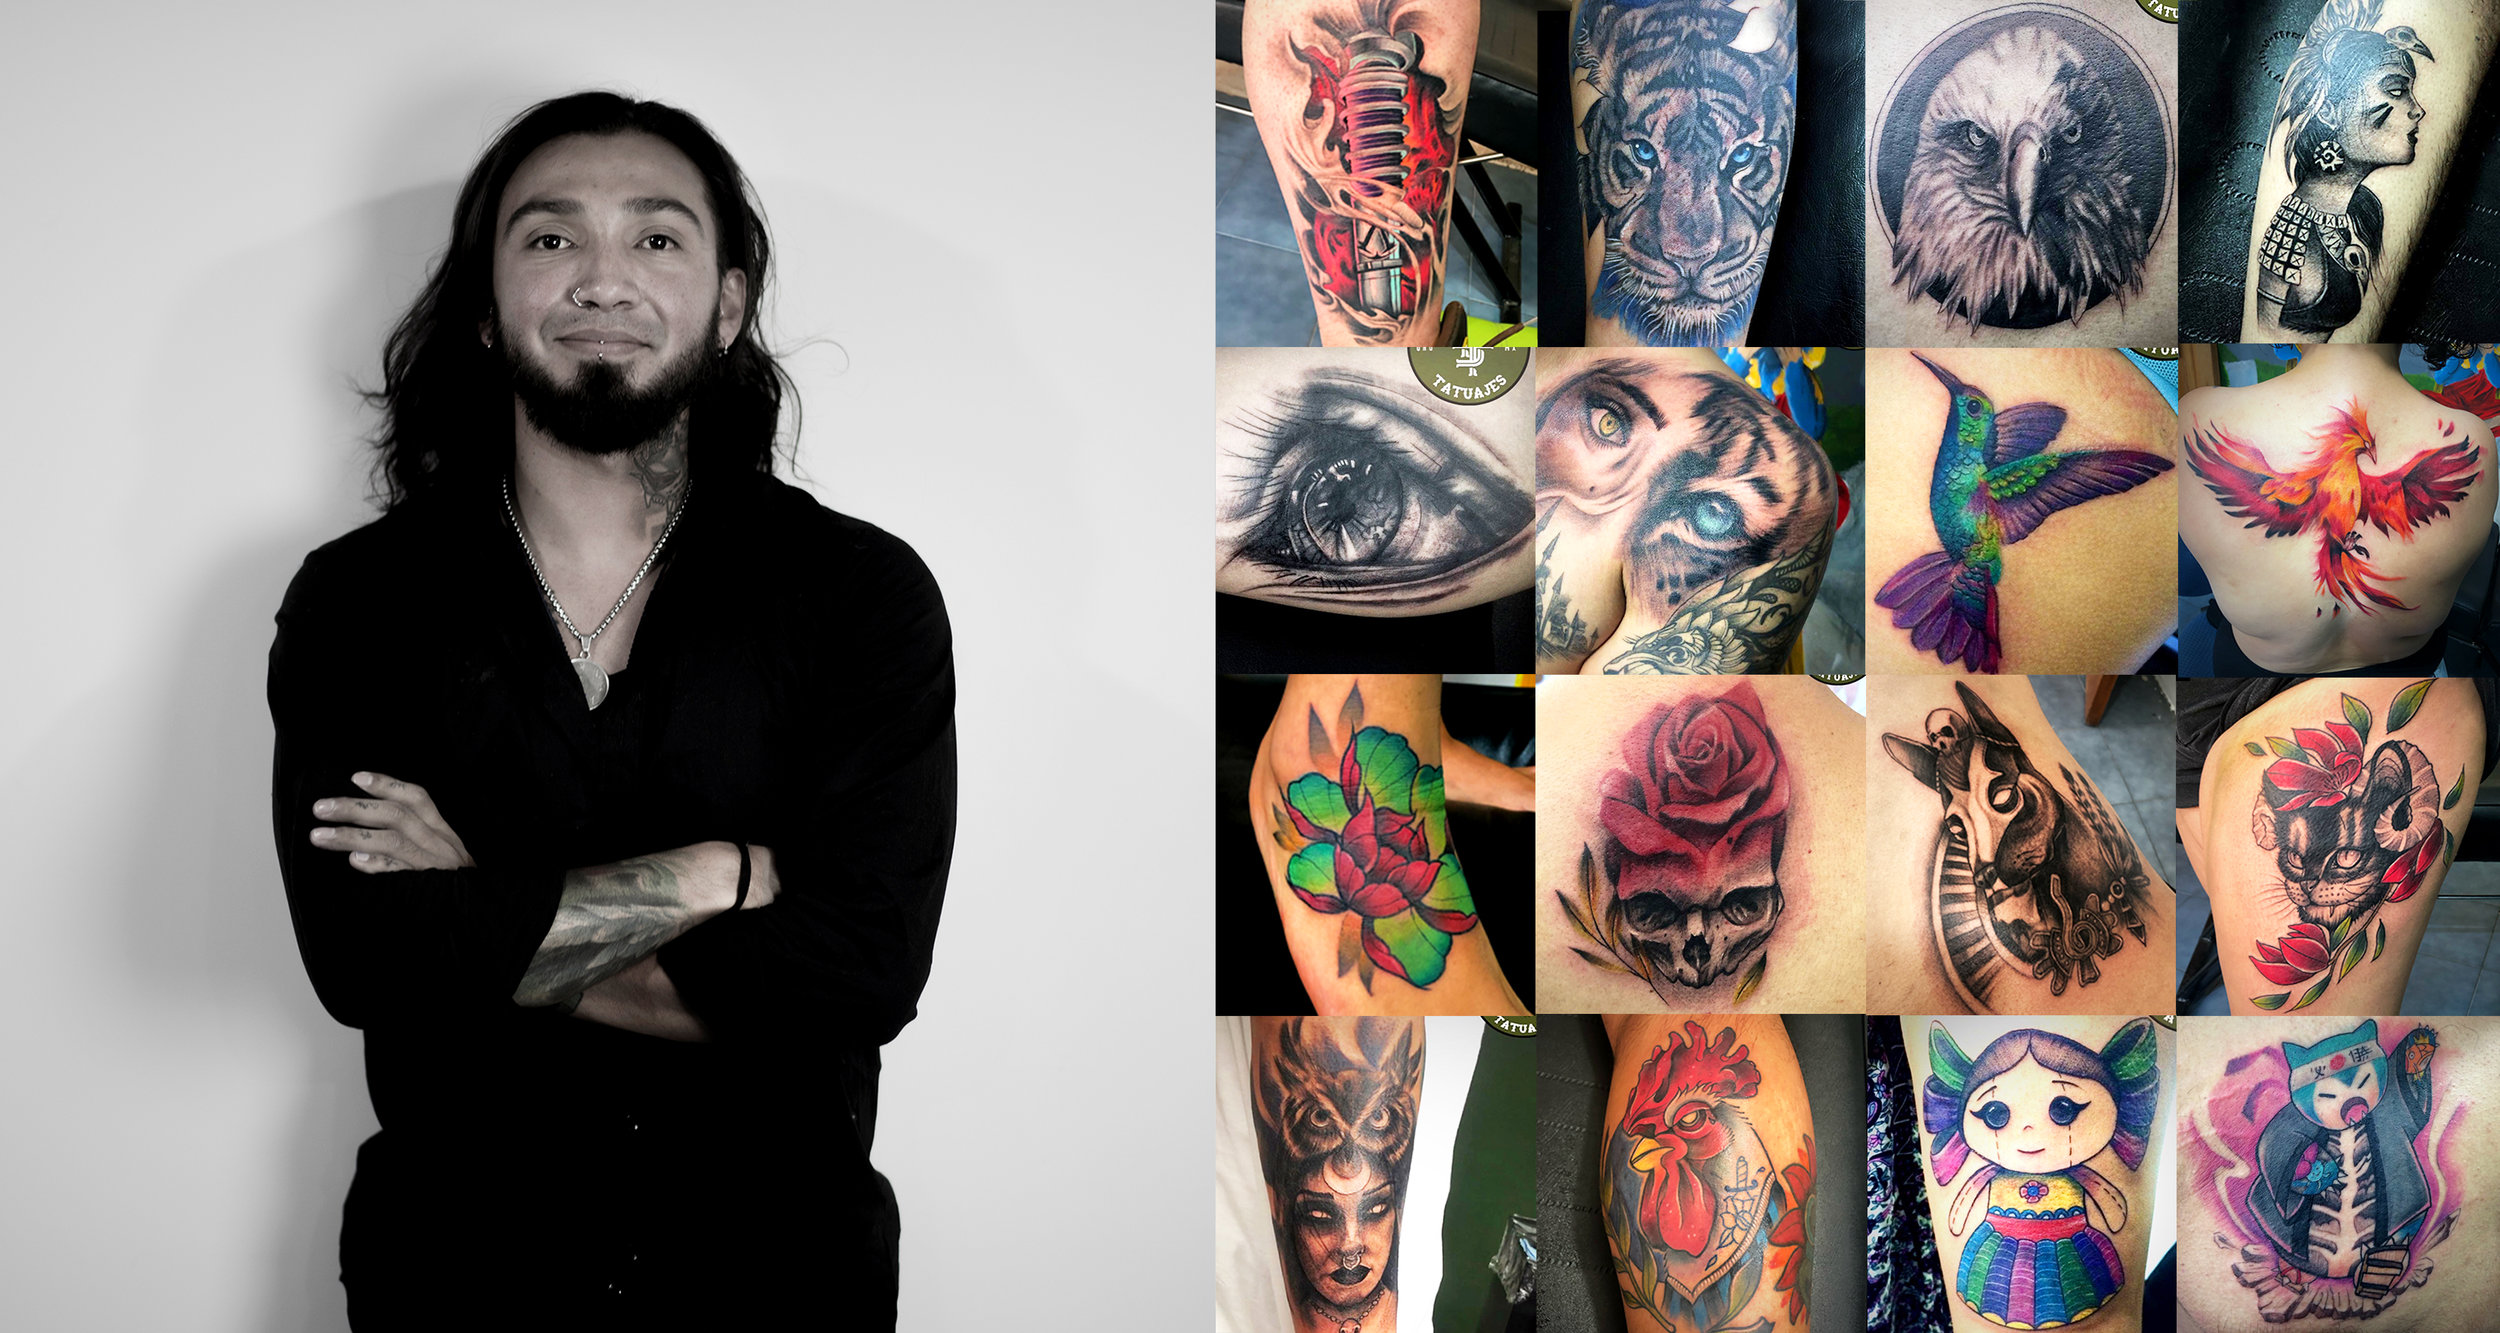 EMMANUEL   Realism, Portraits, Animals, Neotraditional, New School, Black and Grey, Illustrative tattoos, Floral tattoo, Flash.